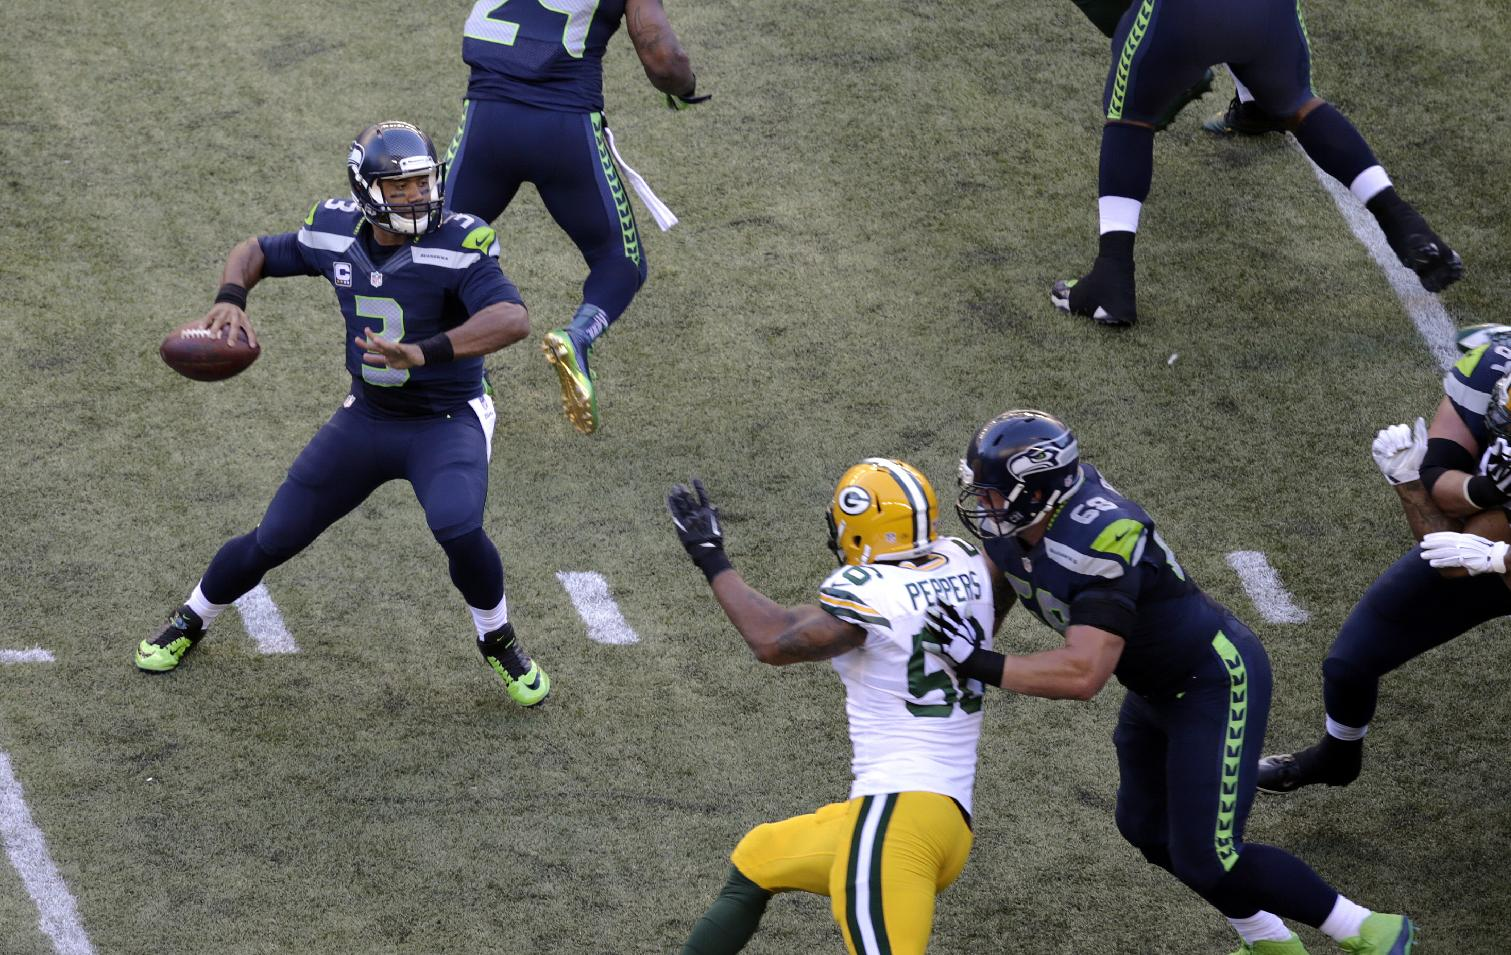 Seattle Seahawks quarterback Russell Wilson (3) looks to pass against the Green Bay Packers during the first half of an NFL football game, Thursday, Sept. 4, 2014, in Seattle